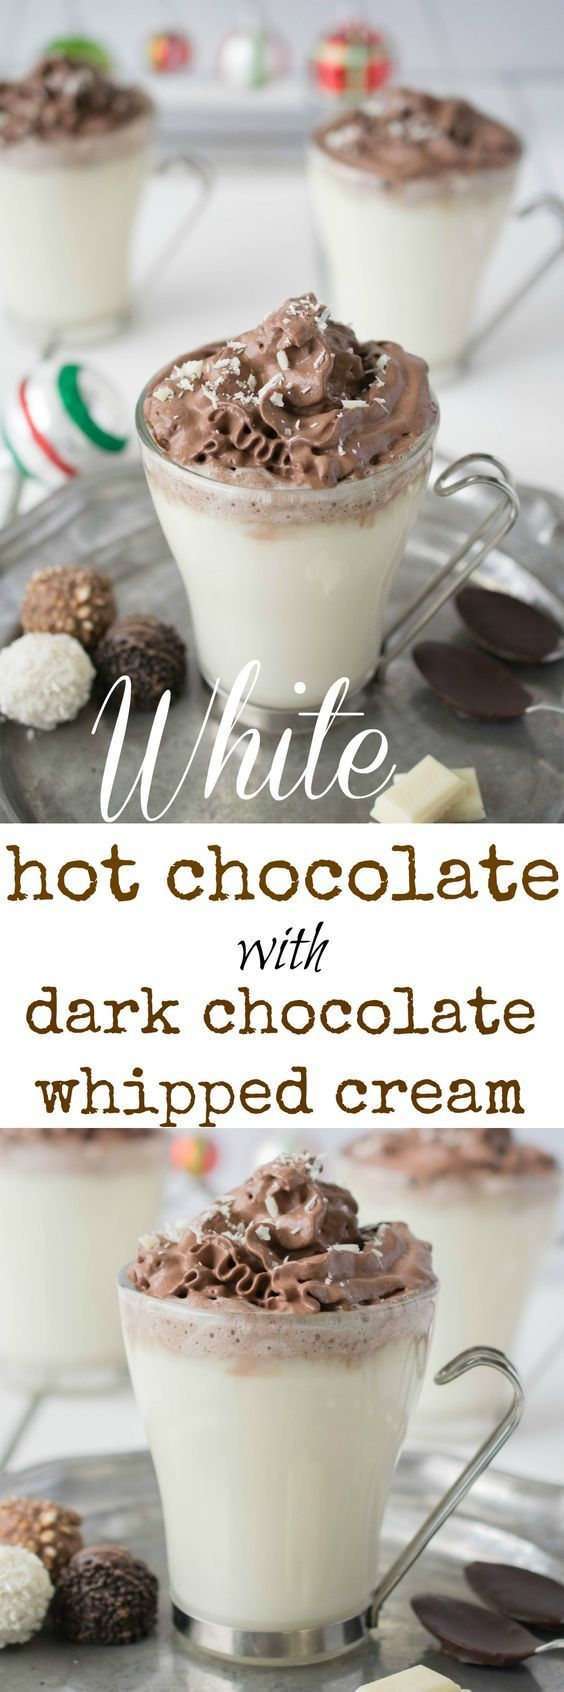 White hot chocolate with dark chocolate whipped cream